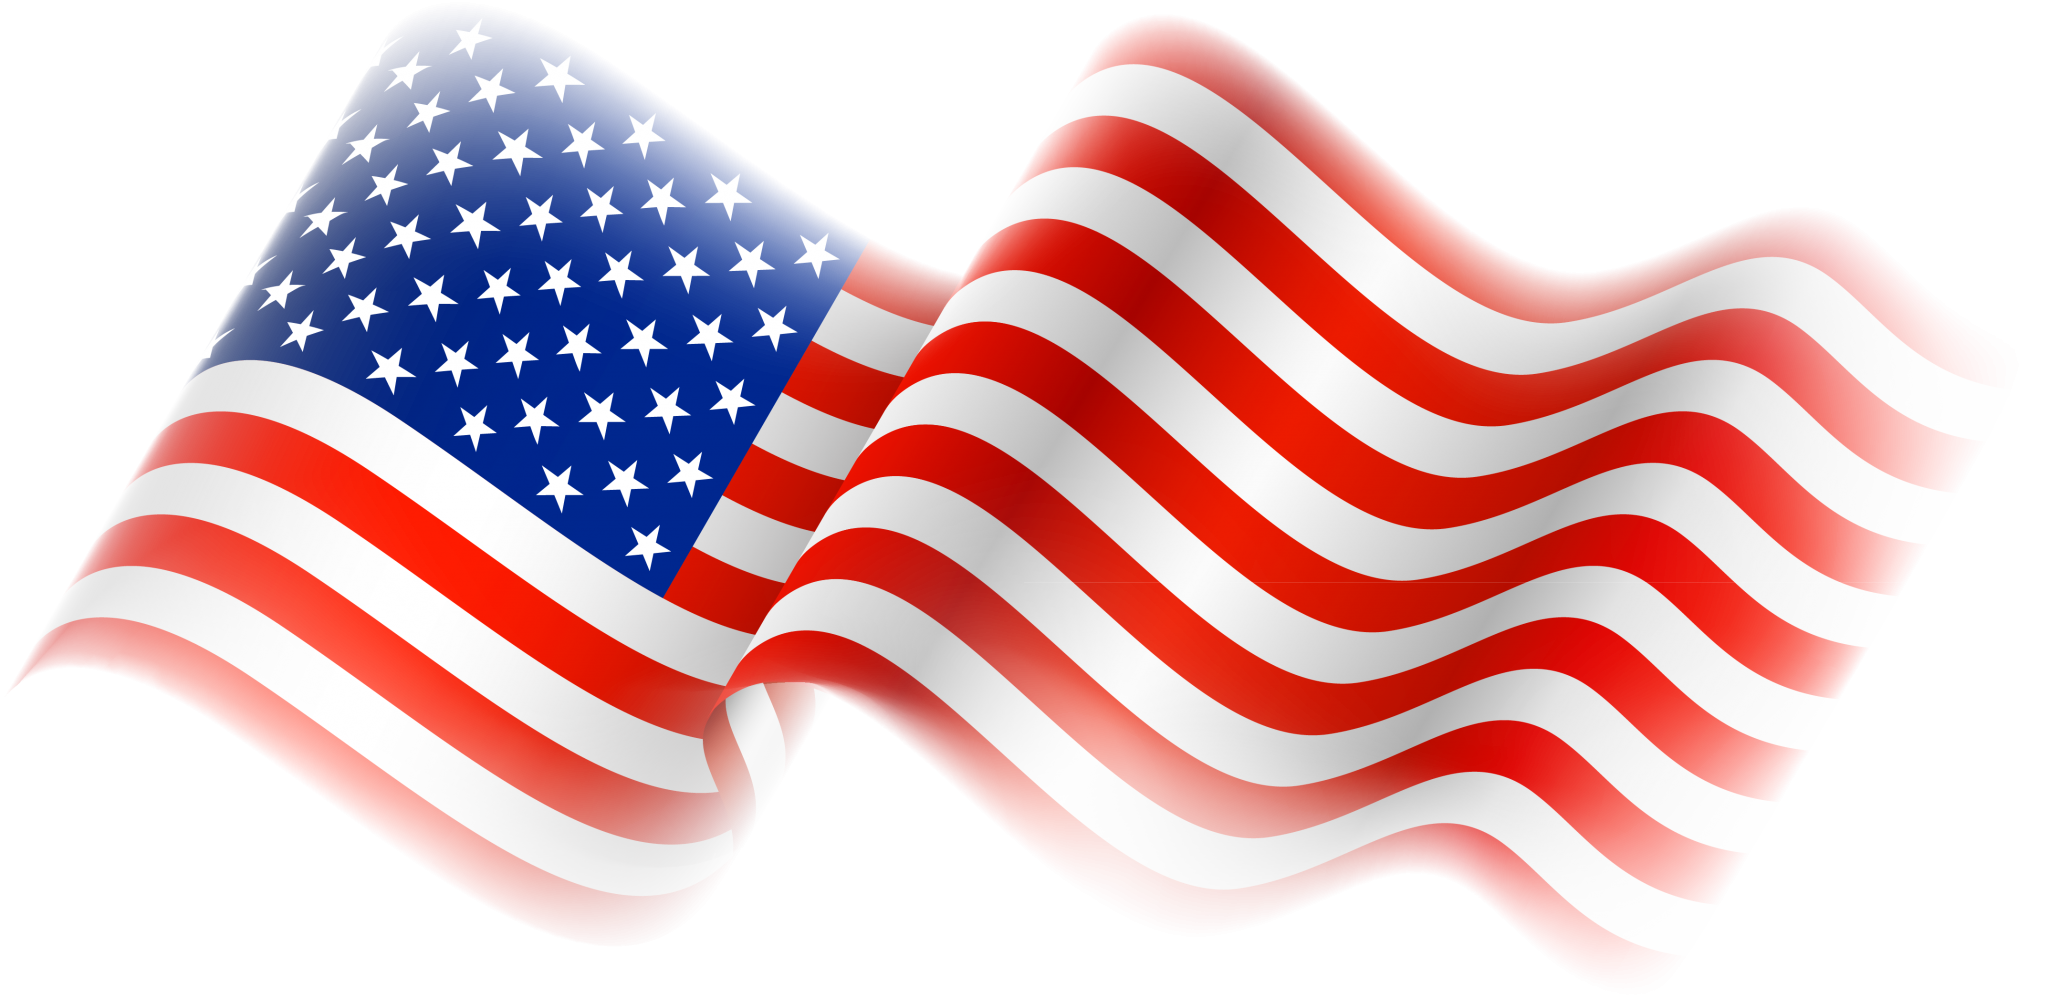 American Flag Widescreen Backgrounds